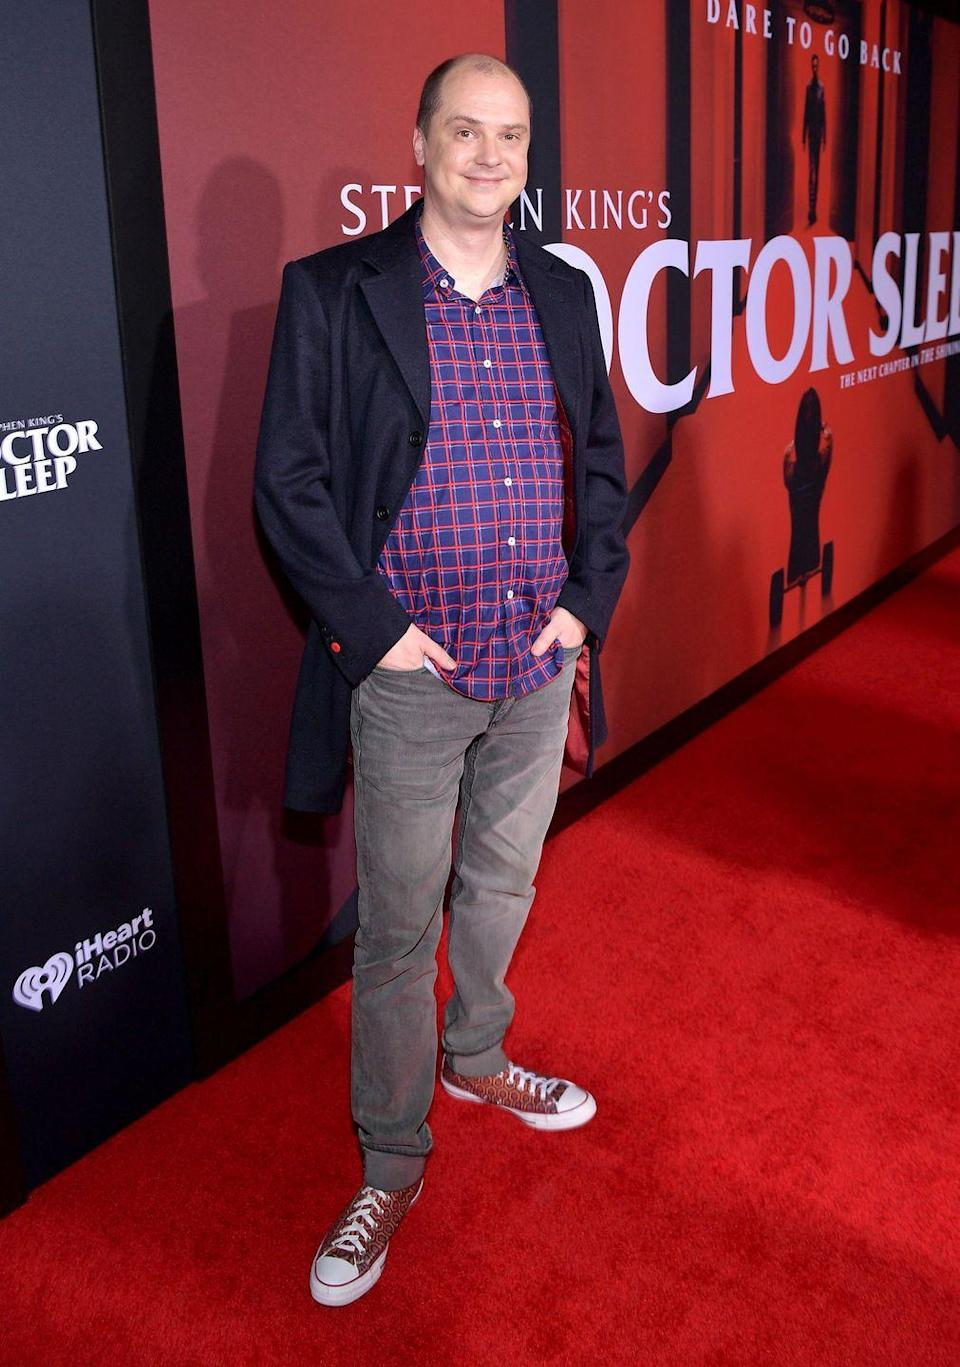 """<p>Mike Flanagan has a nice winning streak going with Netflix. The writer-director has been behind both series under <em>The Haunting </em>banner, including <em>The Haunting of Hill House </em>and <em><a href=""""https://www.menshealth.com/entertainment/a34403260/haunting-of-bly-manor-netflix-ghosts-hidden-background-revealed/"""" rel=""""nofollow noopener"""" target=""""_blank"""" data-ylk=""""slk:The Haunting of Bly Manor"""" class=""""link rapid-noclick-resp"""">The Haunting of Bly Manor</a>. </em>In 2021, he's bringing some of his favorite players back—including Kate Siegel and Rahul Kohli—for a new horror series, titled <em>Midnight Mass. </em>The show will, of course, stick with the horror theme, this time following a community that finds horrifying events occurring after a mysterious priest arrives in town. </p><p>Just a guess, but we think we could probably pencil this one in for a November or December release based on the title alone, right? </p>"""